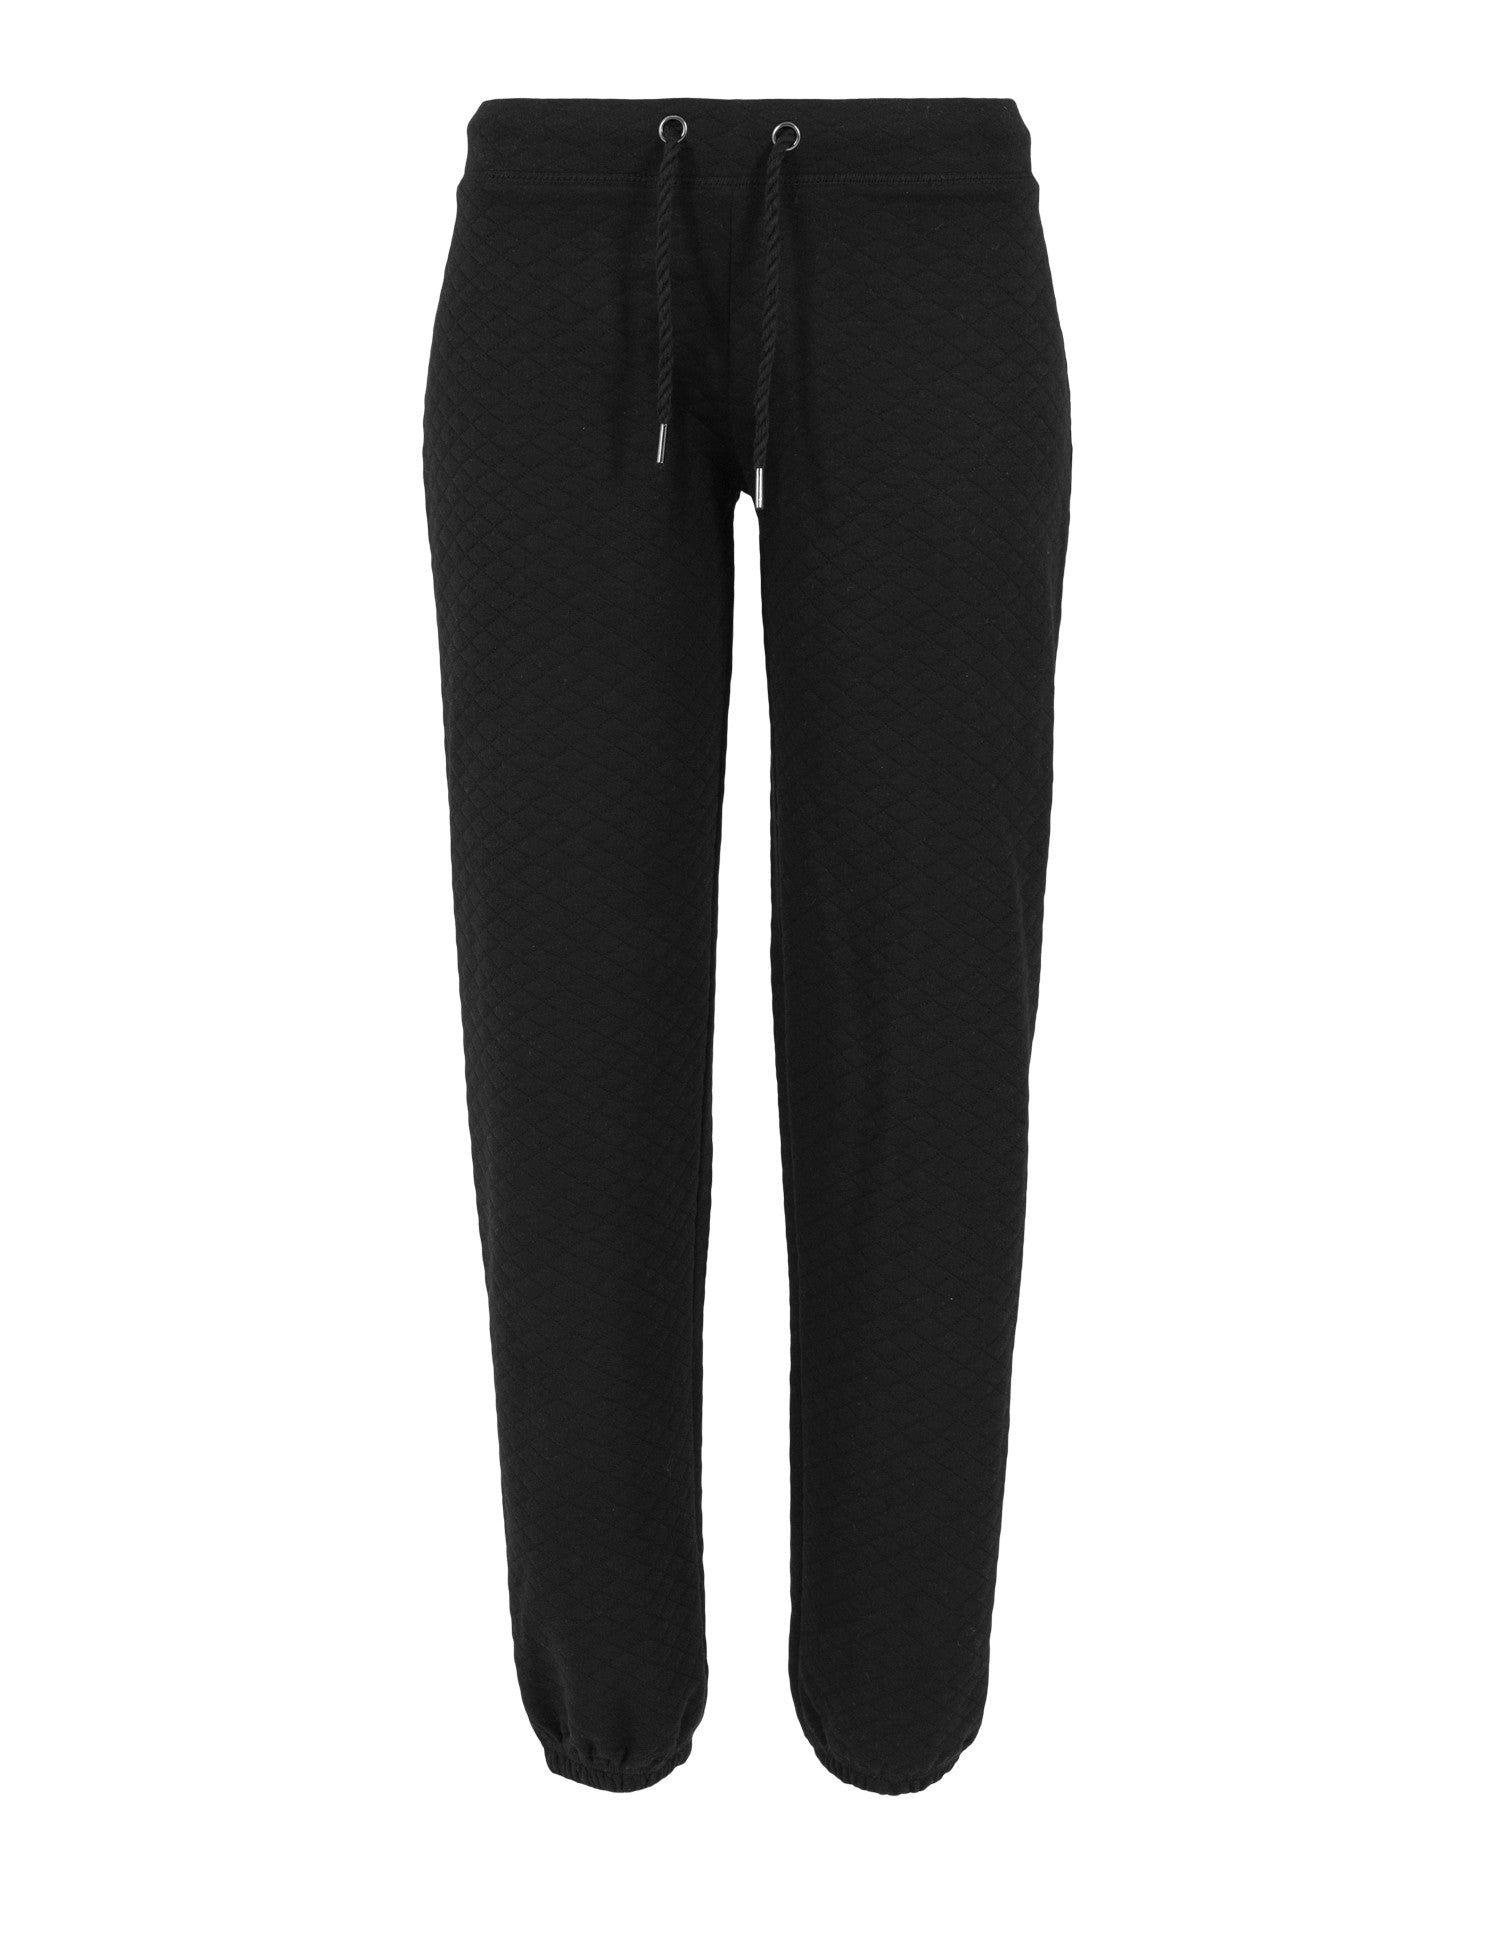 Ladies Quilt Jogging Pants TB1072 Black